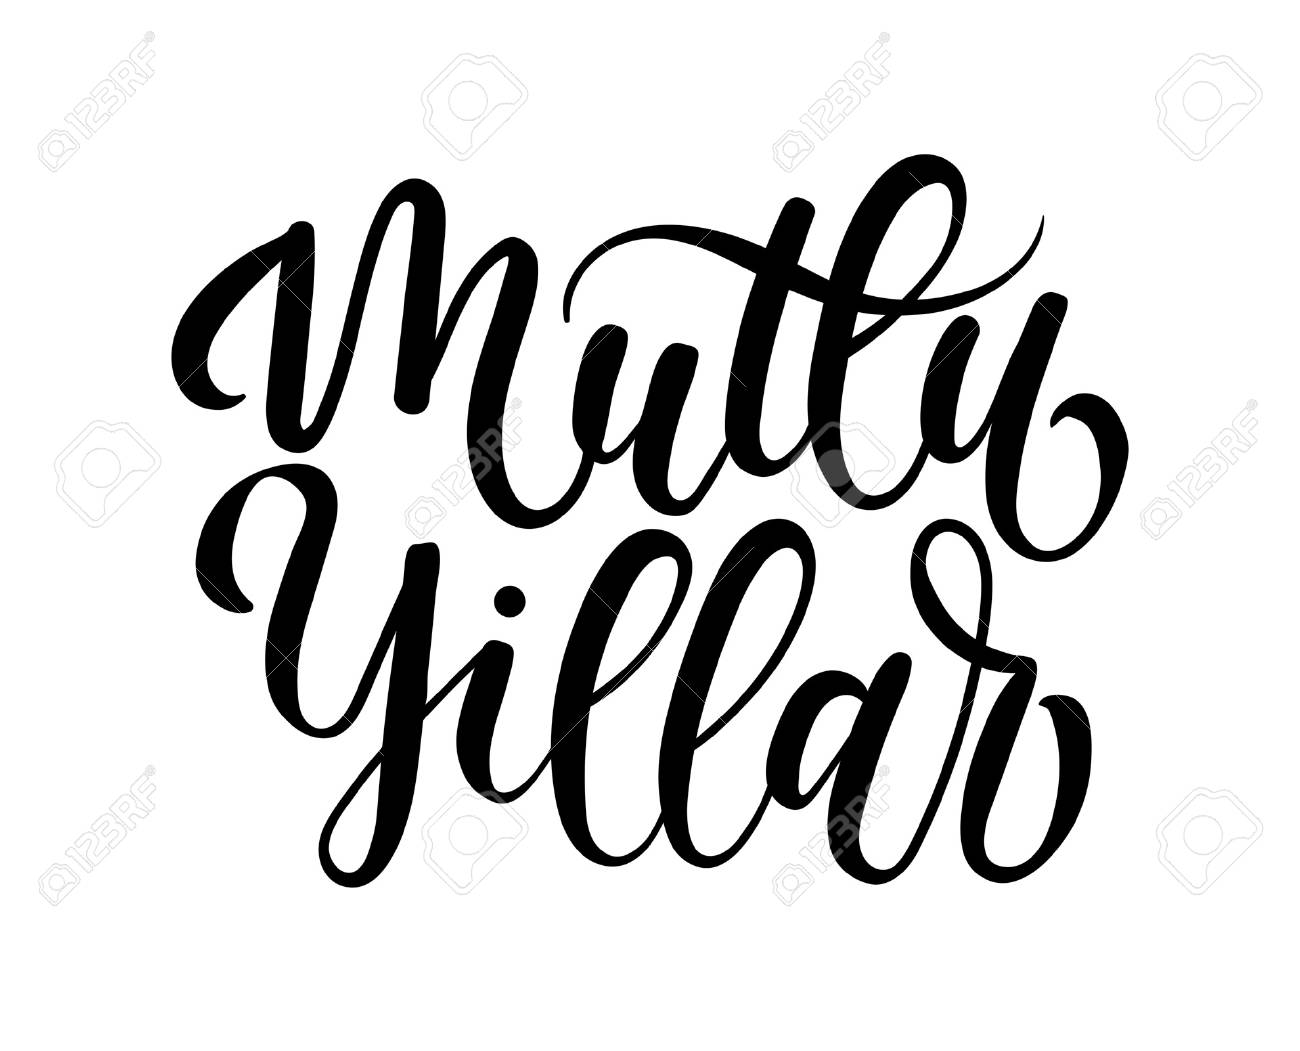 Mutlu Yillar Hand Lettering Illustration  Happy New Year Calligraphy     Mutlu Yillar hand lettering illustration  Happy New Year calligraphy  inscription in Turkish  Handwritten congratulations